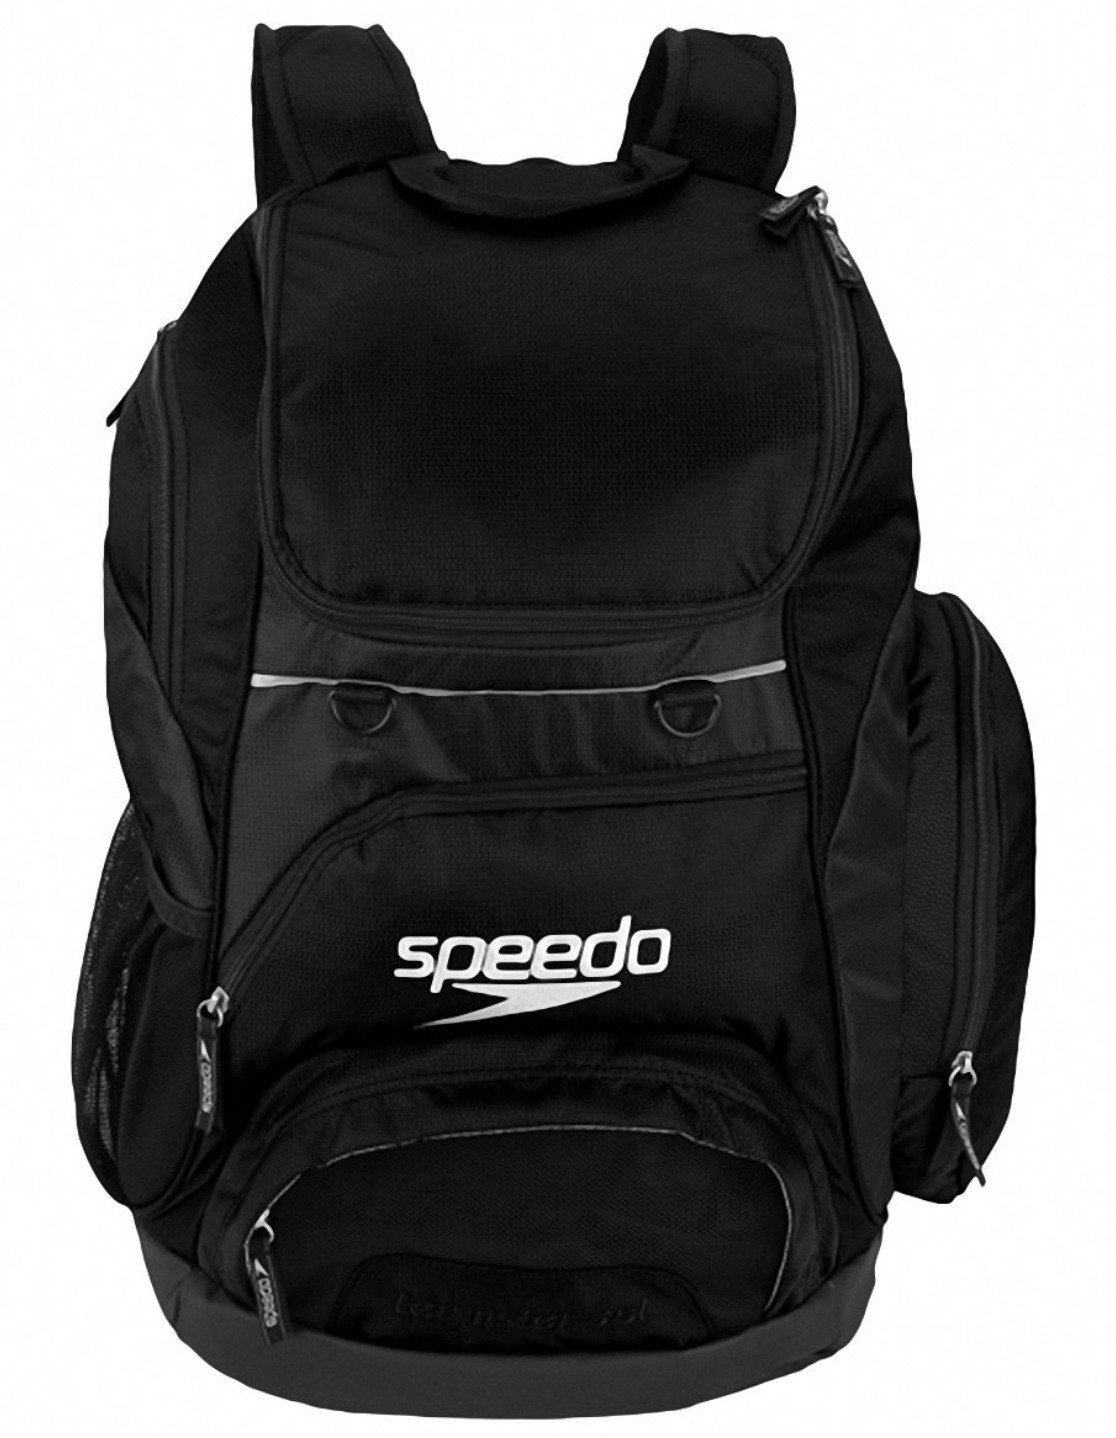 e03253748360 Home   Accessories   Bags   Backpacks   Speedo Solid Teamster Backpack